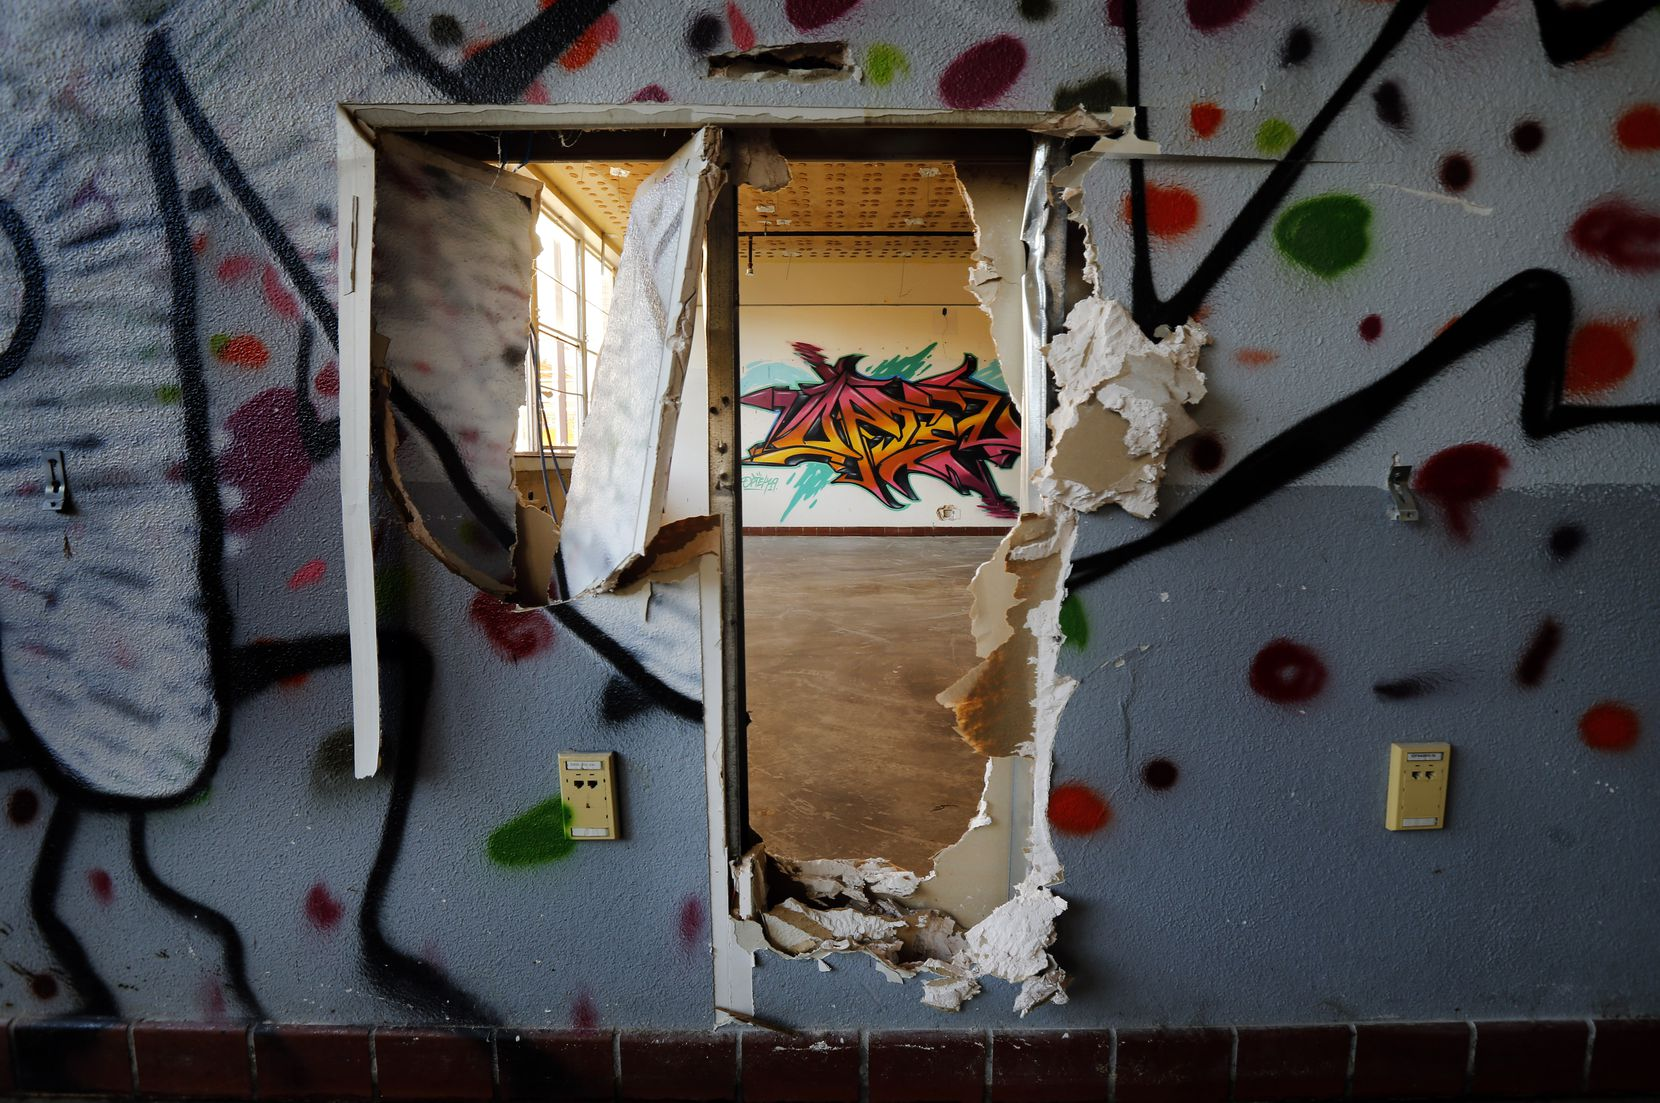 A majority of the classrooms at the closed Pearl C. Anderson Middle Learning Center in South Dallas have been tagged over the last few years.